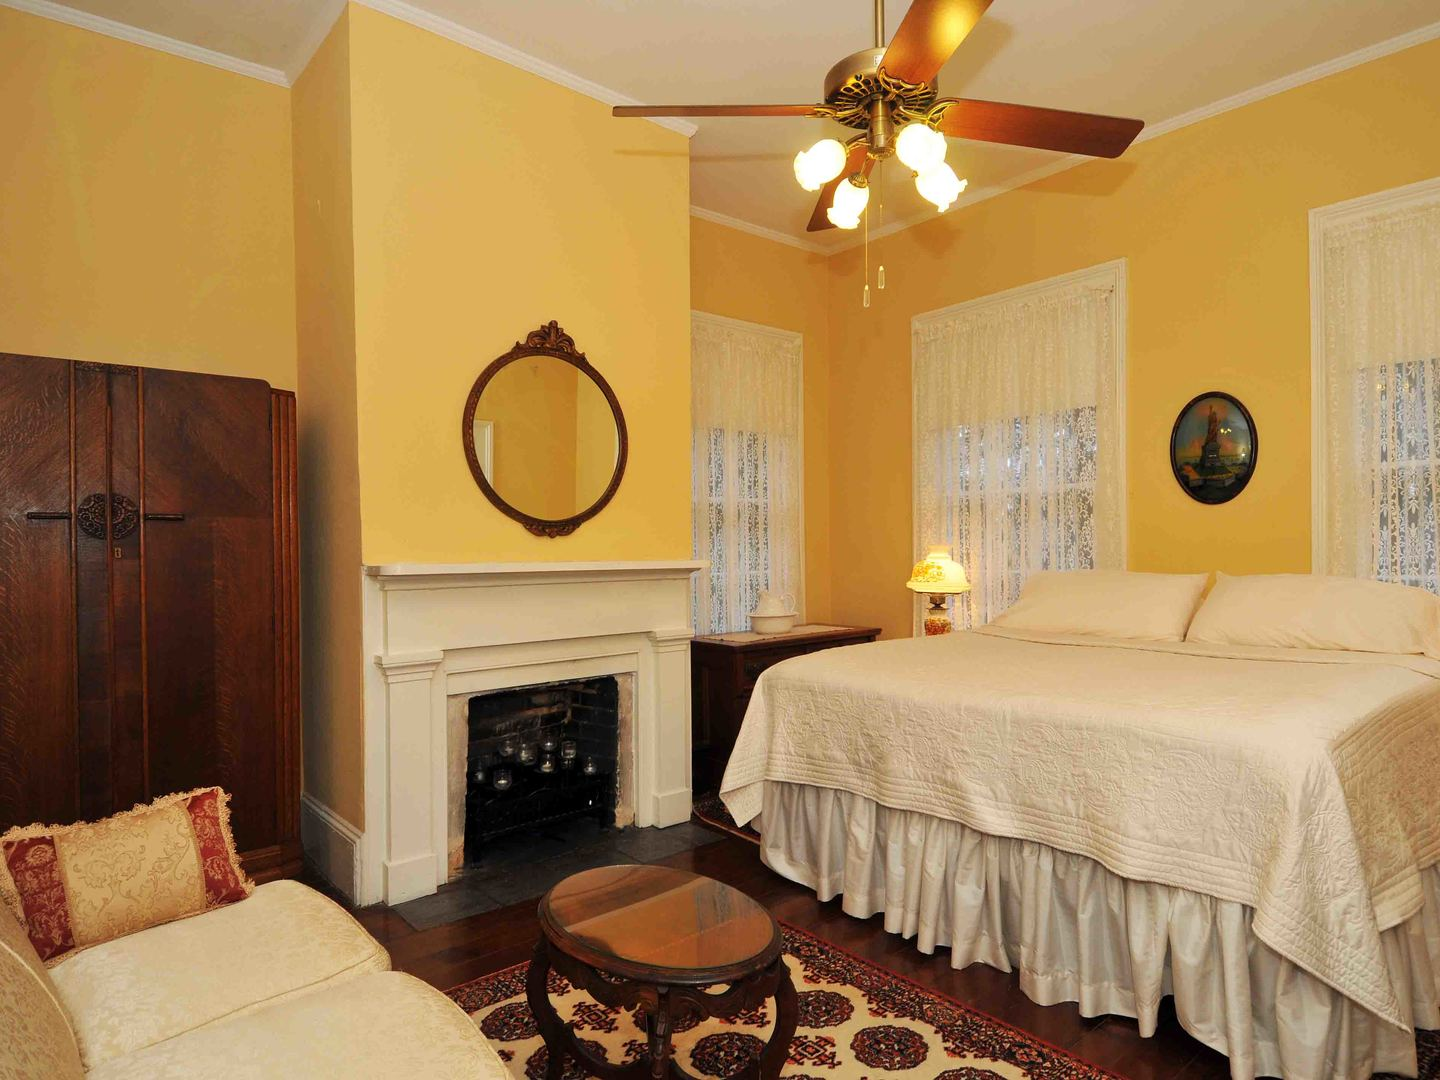 Monticello Bed and Breakfast